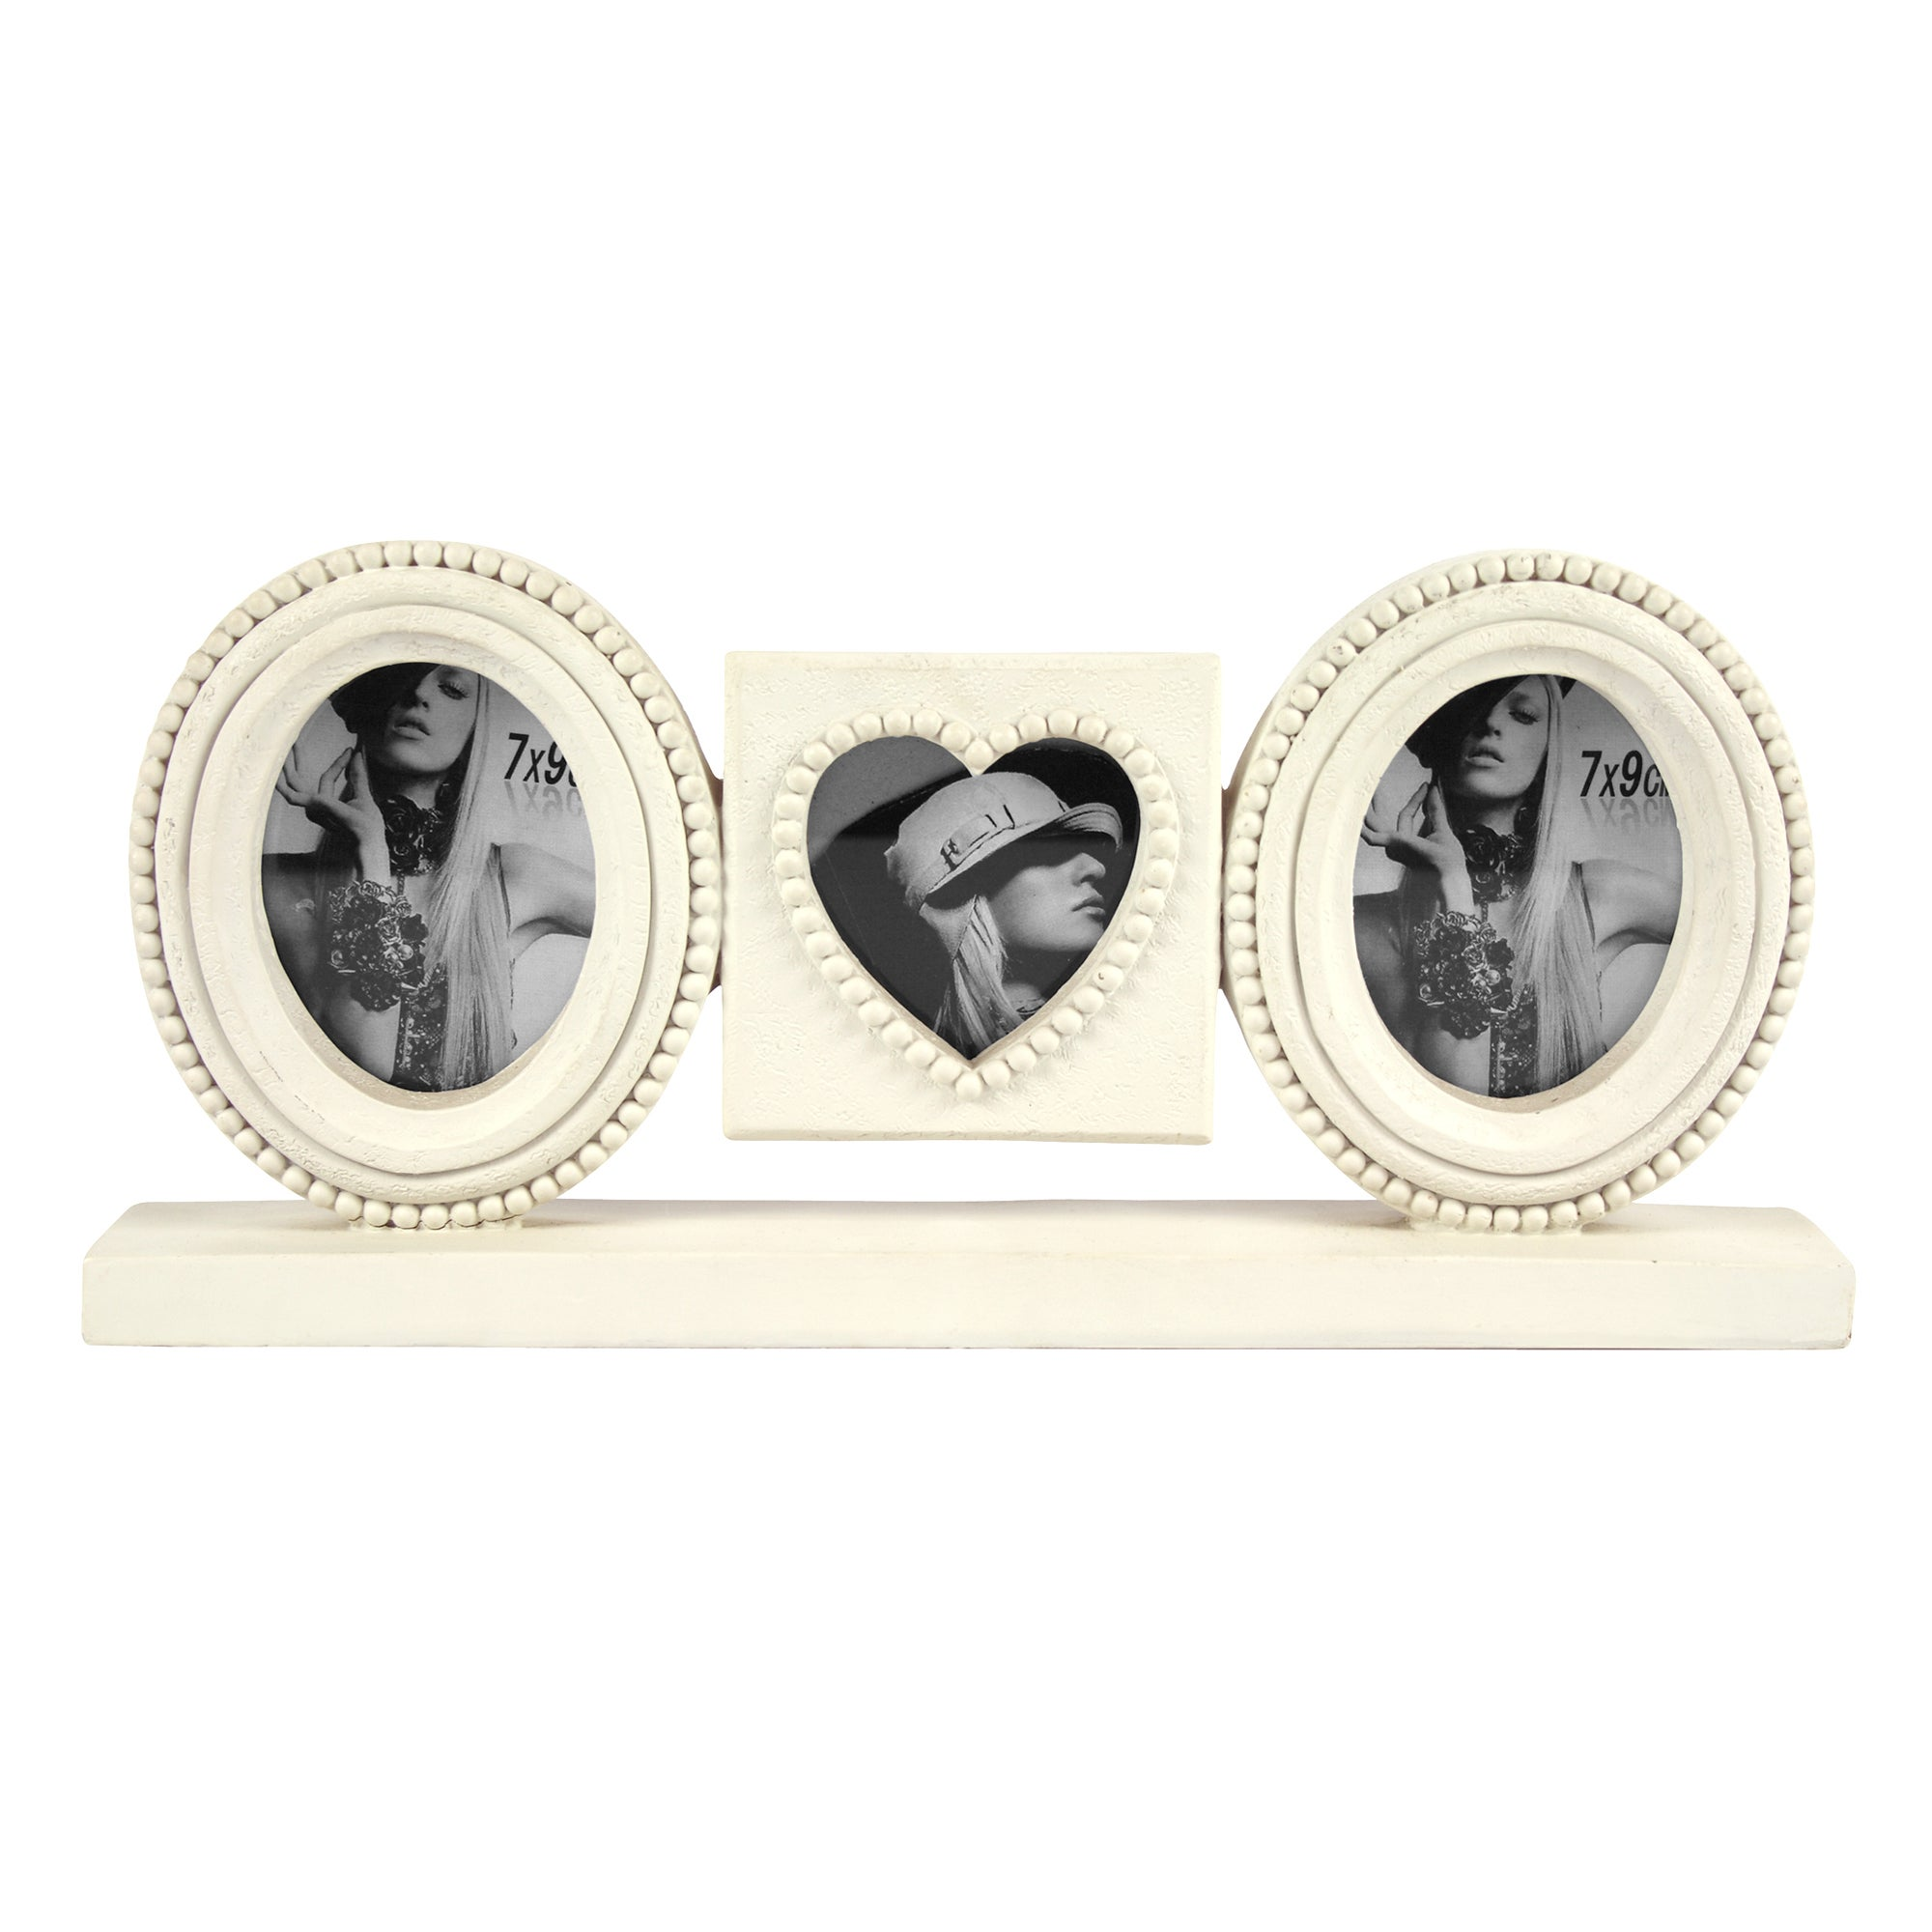 3 Cream Ovals & Heart Frames on a Stand